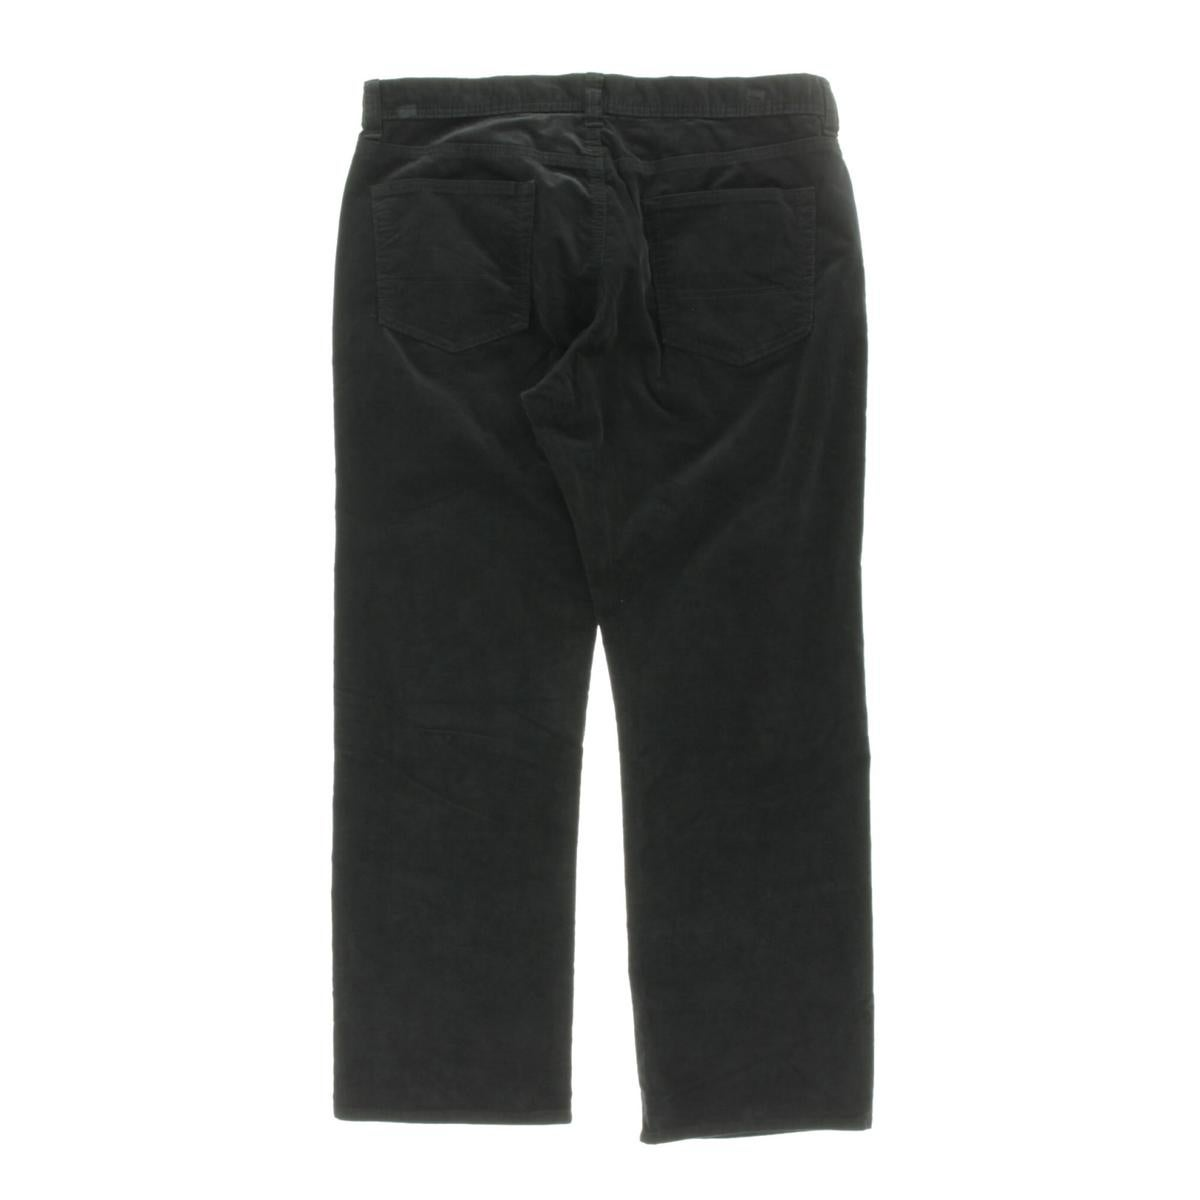 Kirkland Signature Men/'s 5 Pocket Corduroy Pants Black